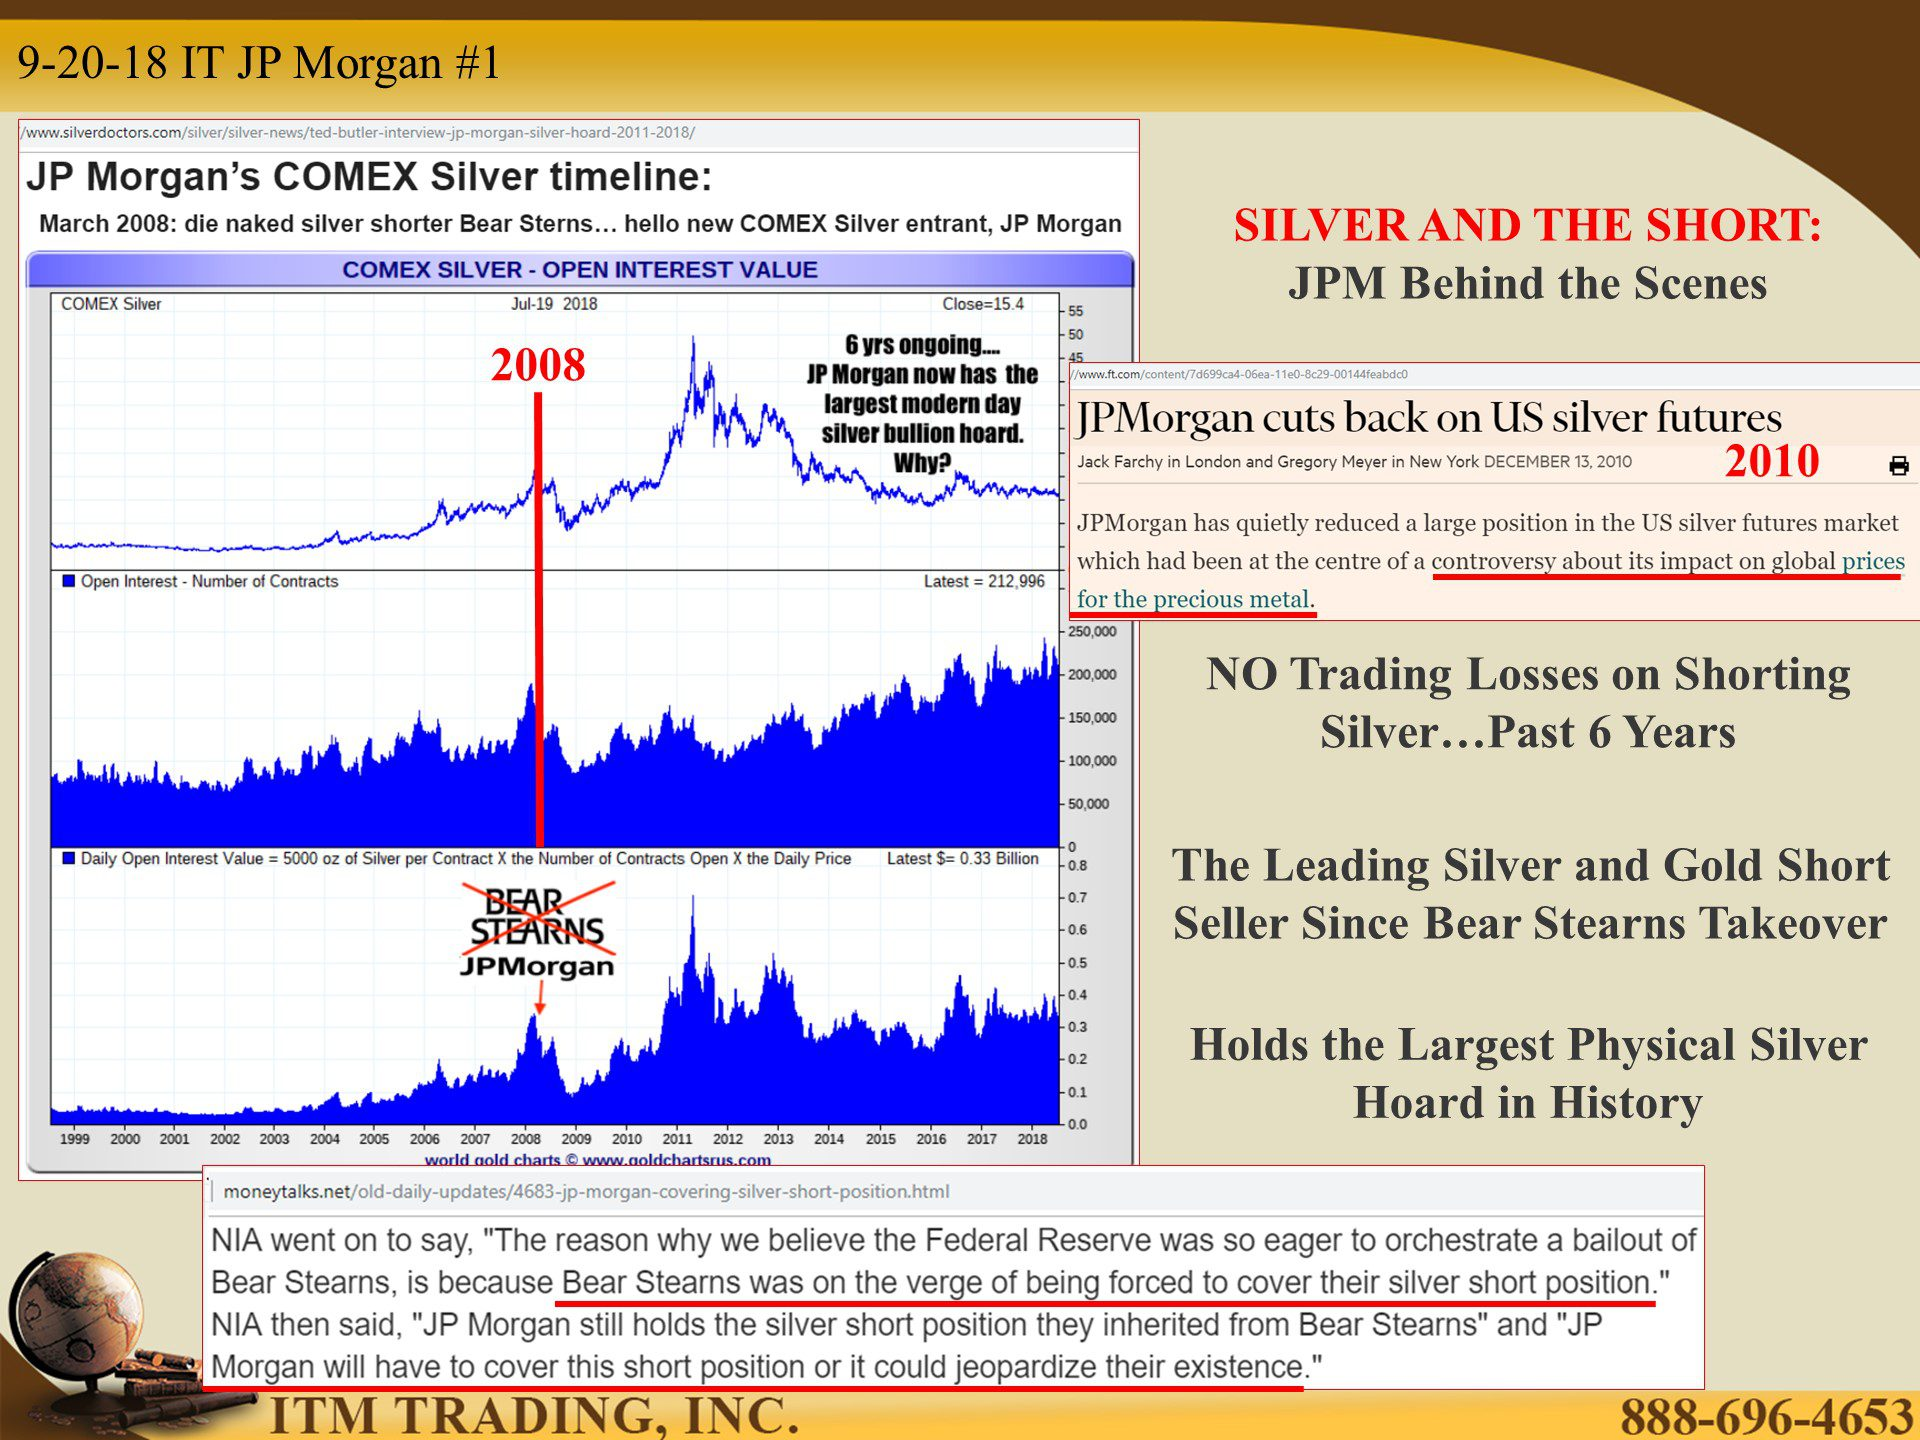 SILVER AND THE SHORT: JPM Behind the Scenes    by Lynette